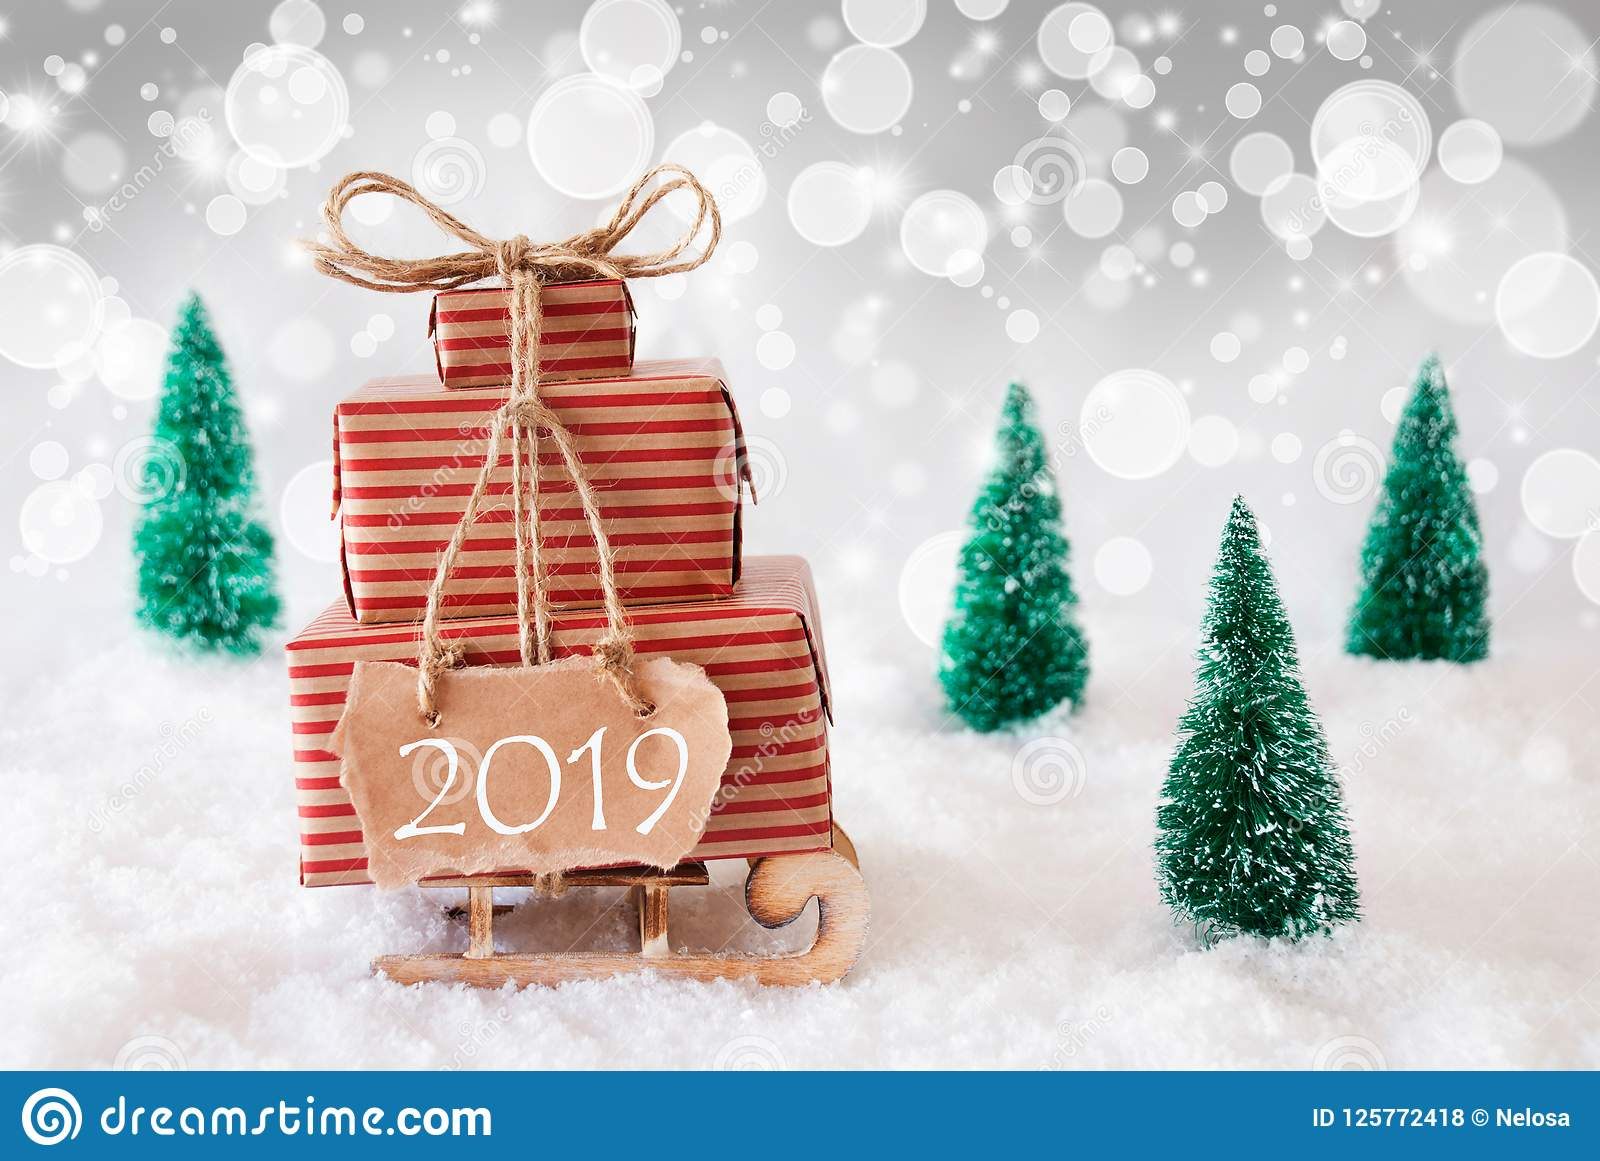 Snow On Christmas 2019 Christmas Sleigh On White Background, 2019, Silver Bokeh Effect